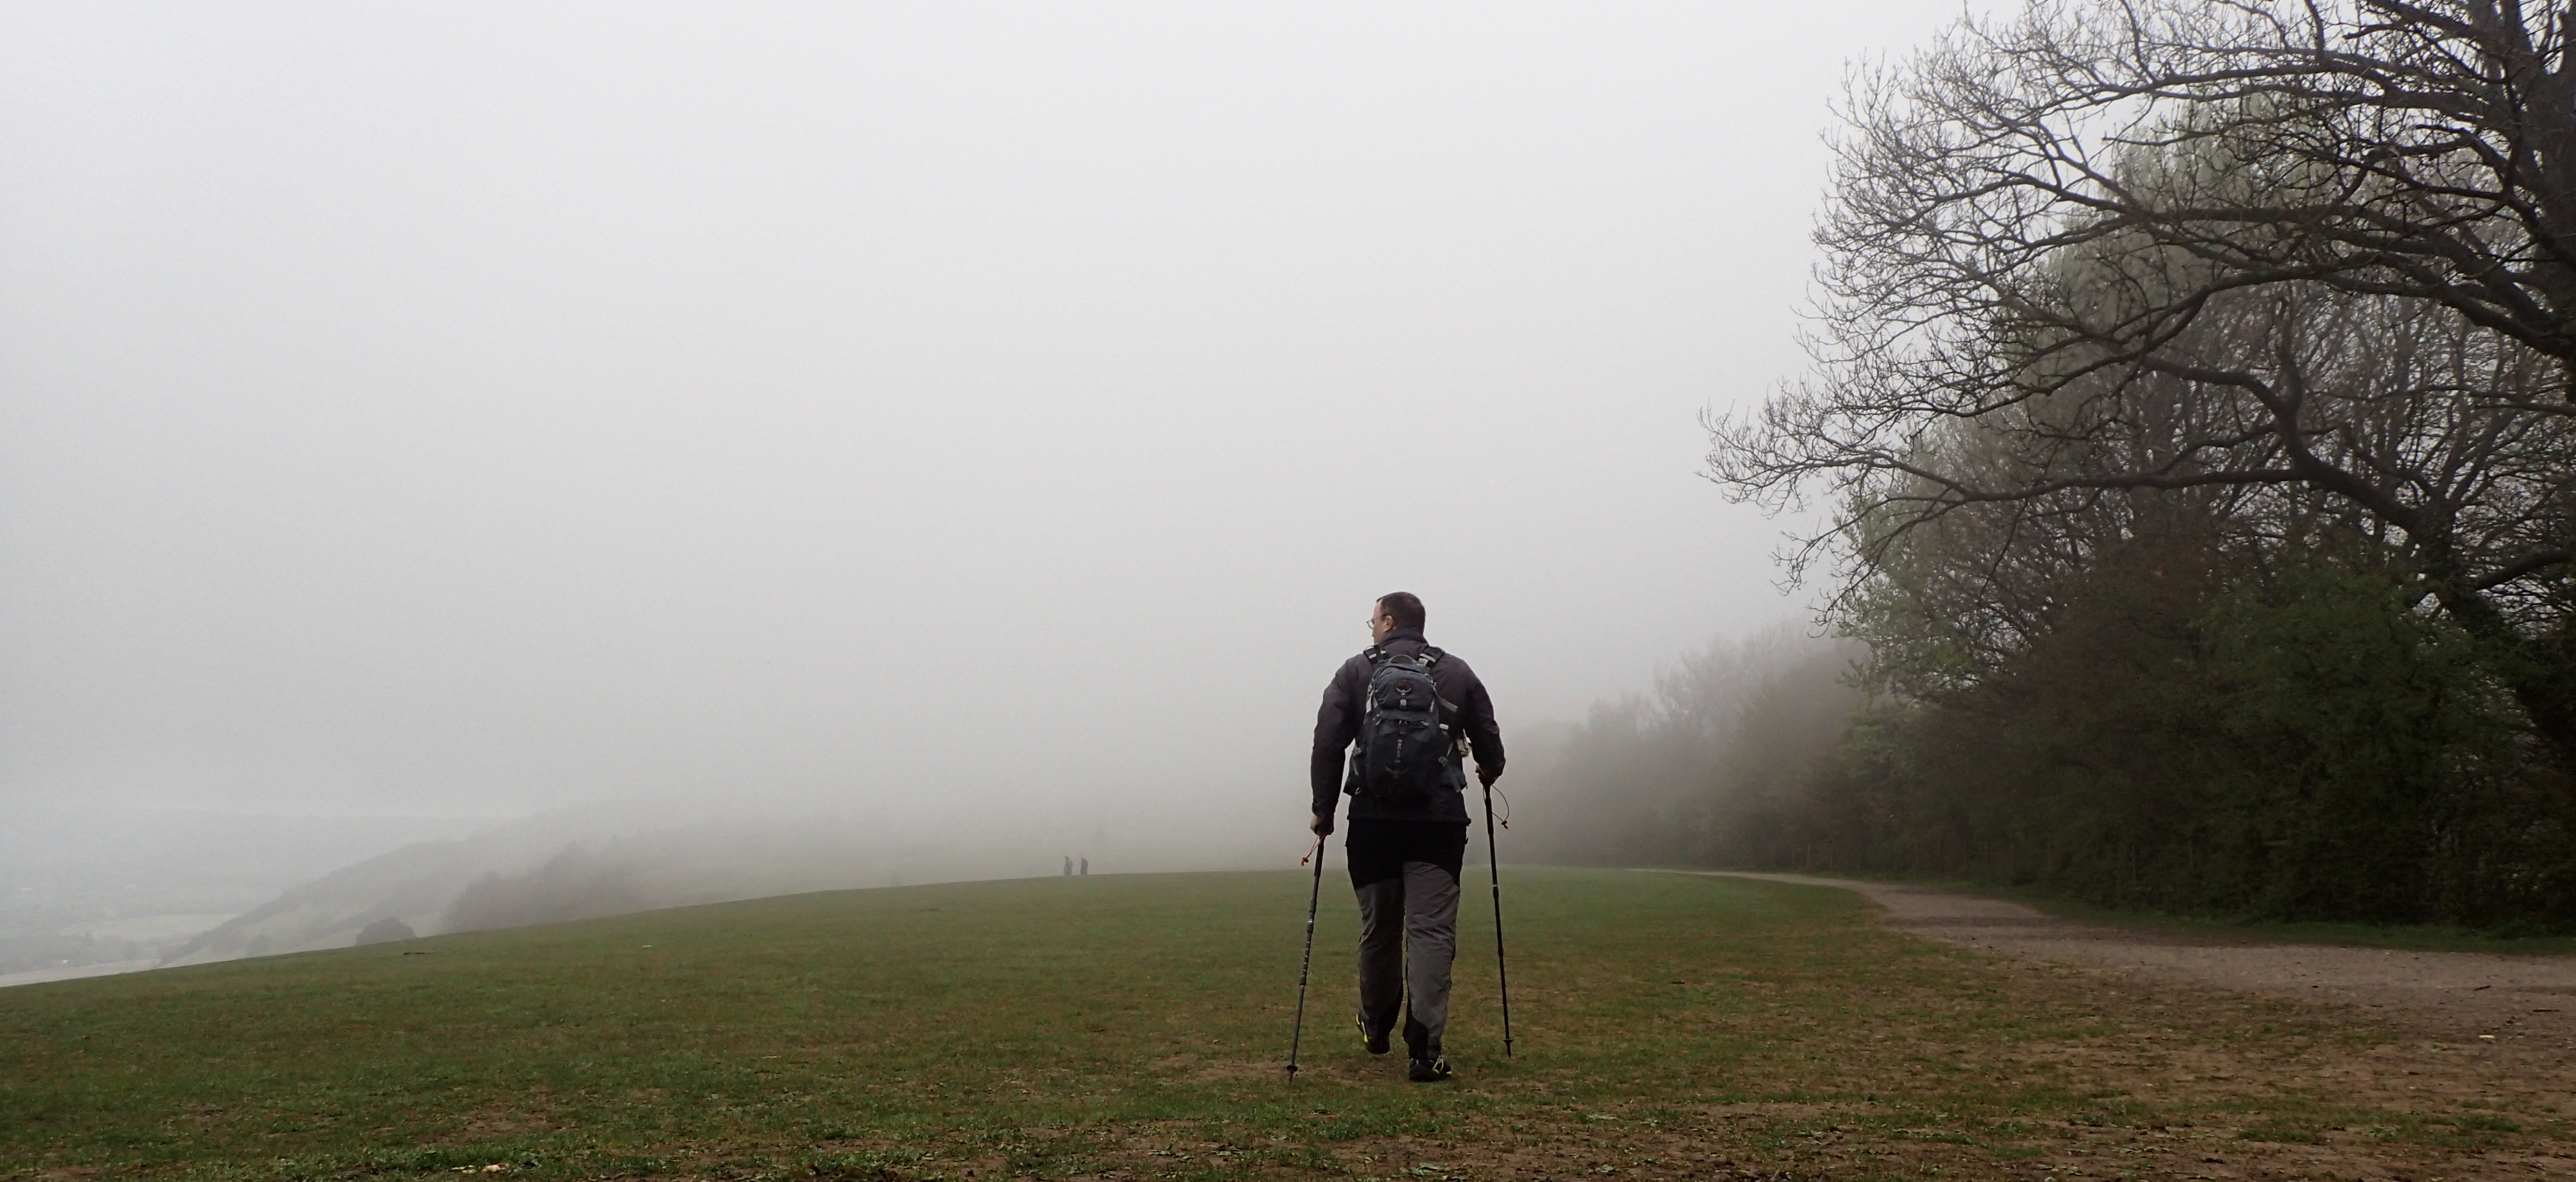 Misty mornings in May on the Surrey hills